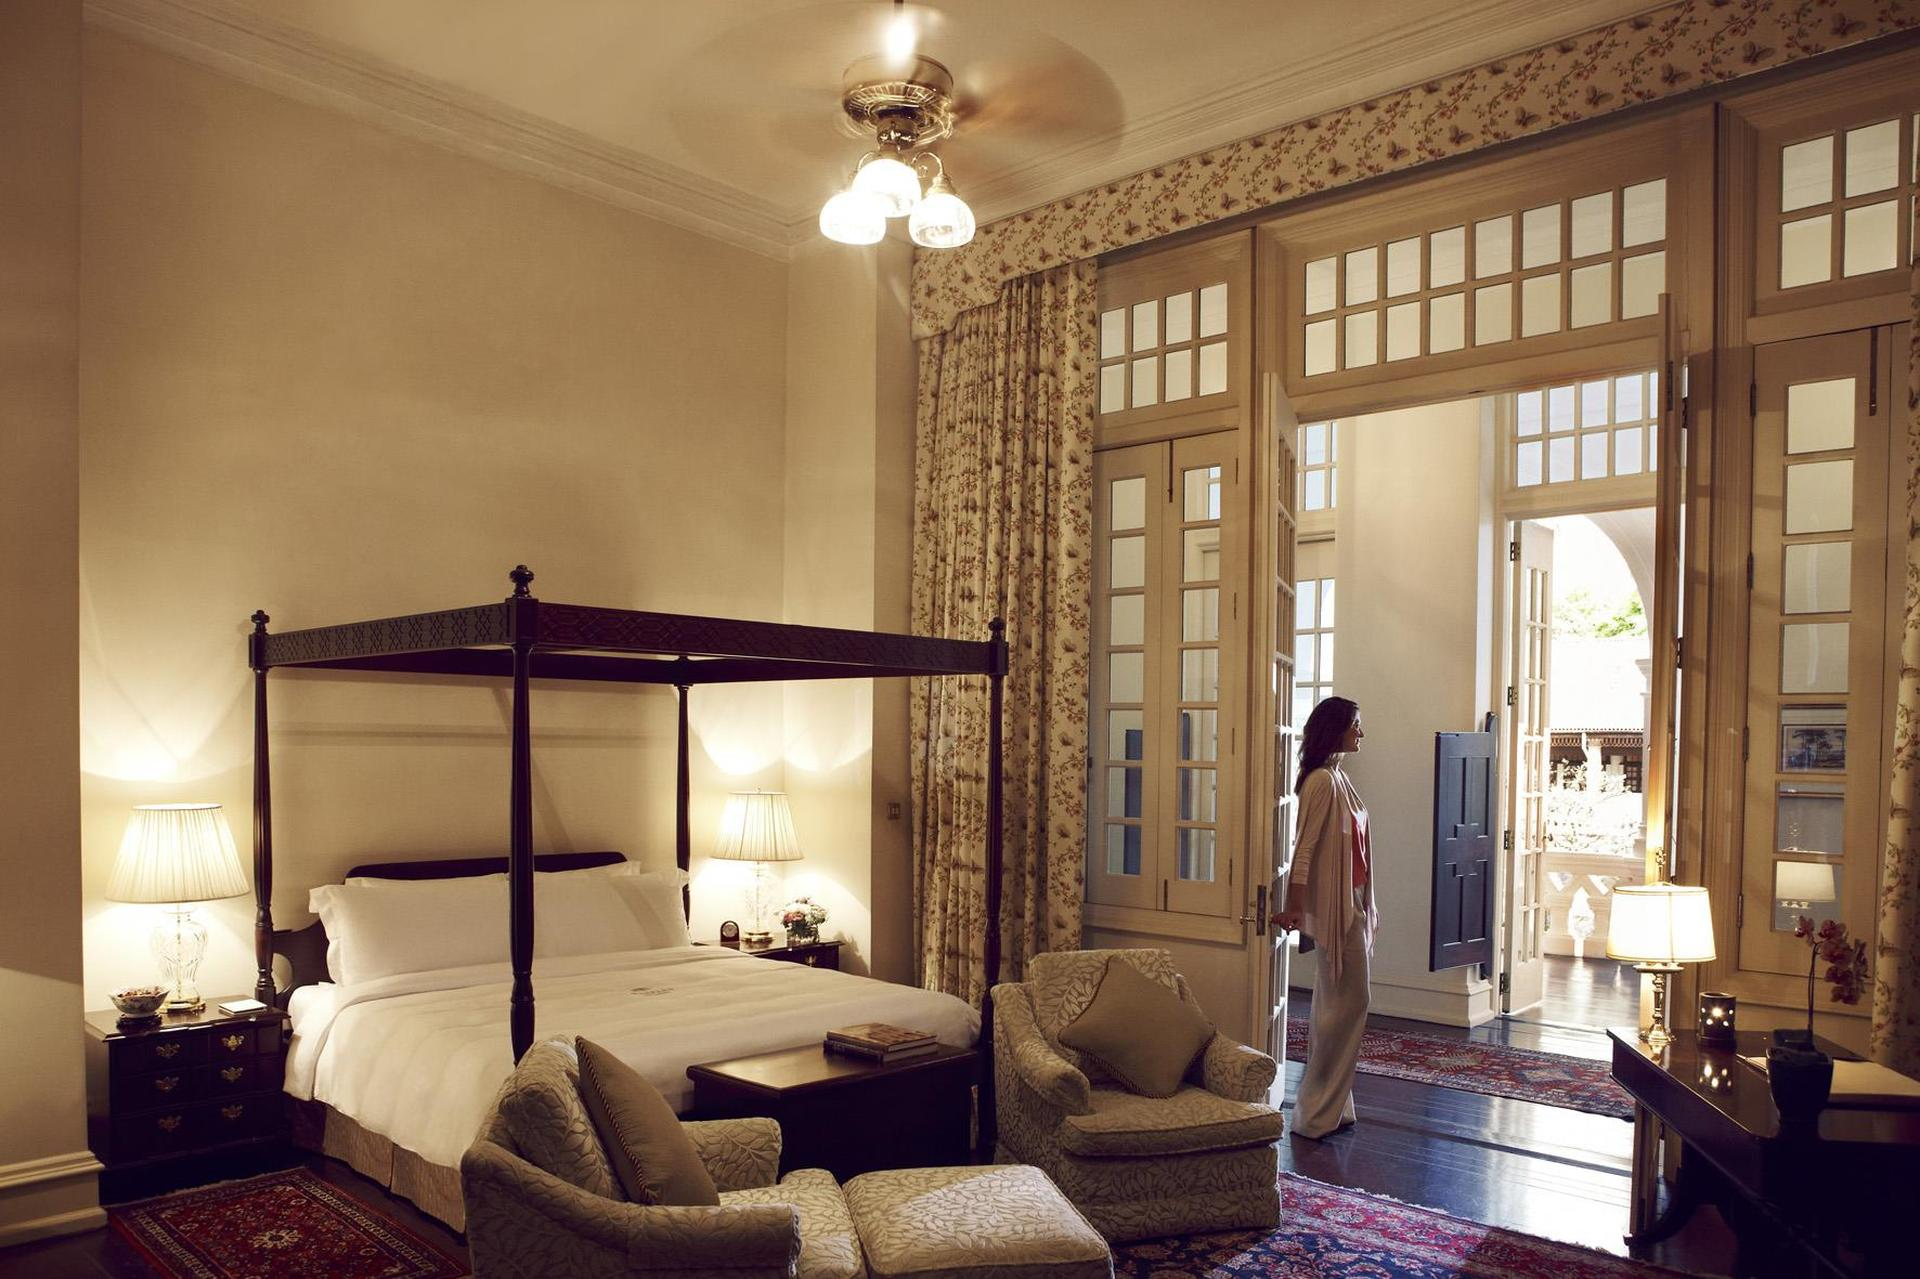 Raffles Hotel Singapore Pres Suite (Sarkies Suite_484486_high.jpg